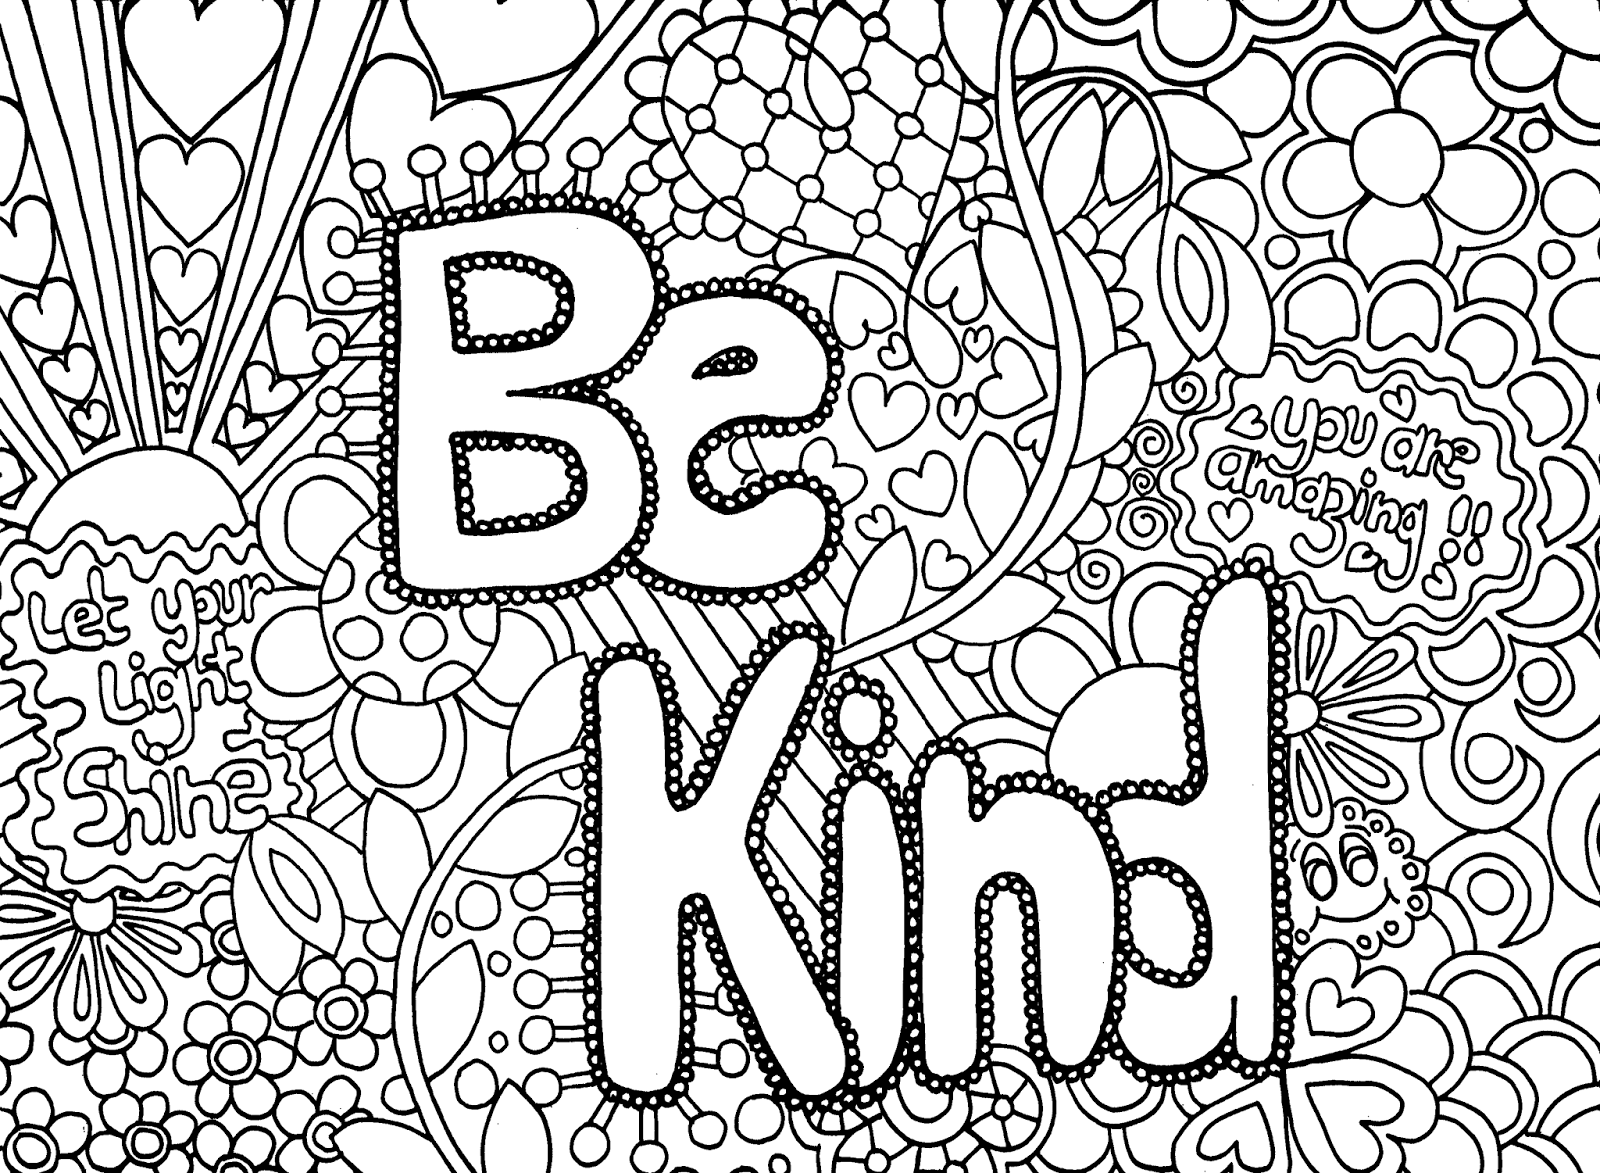 Detailed coloring sheets